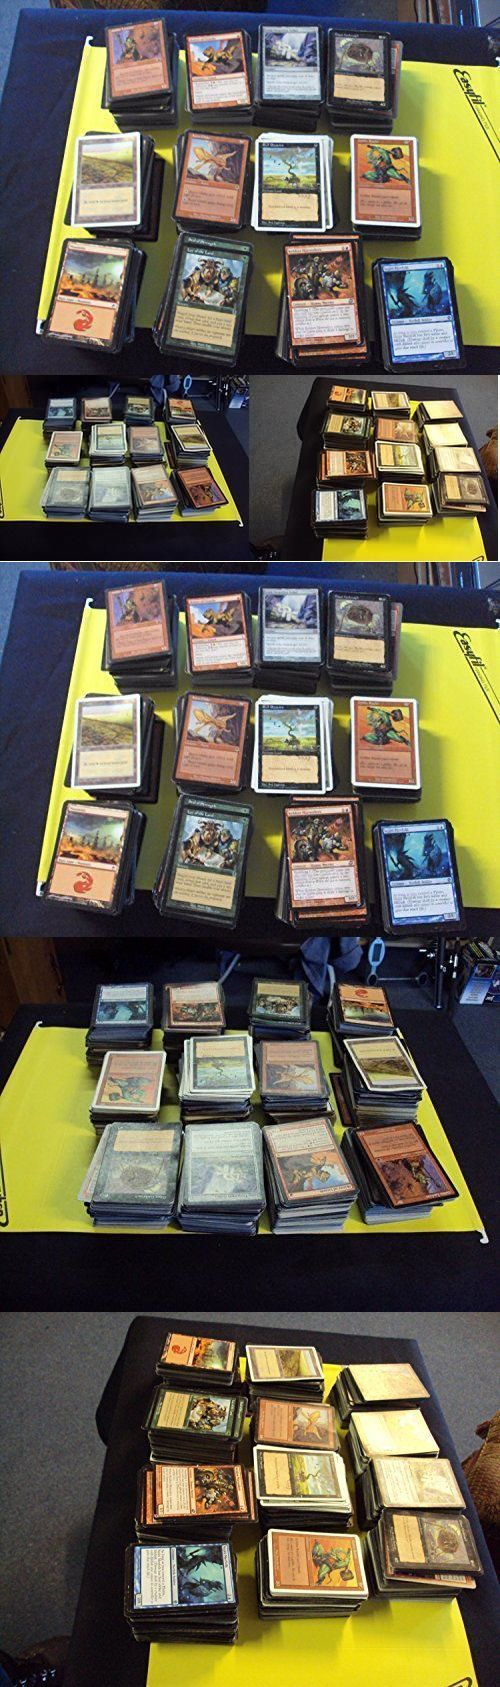 MTG Mixed Card Lots 19113: Magic: The Gathering Magic Card Collection 2000+ Cards!!! Includes Foils, Rares -> BUY IT NOW ONLY: $31.72 on eBay!